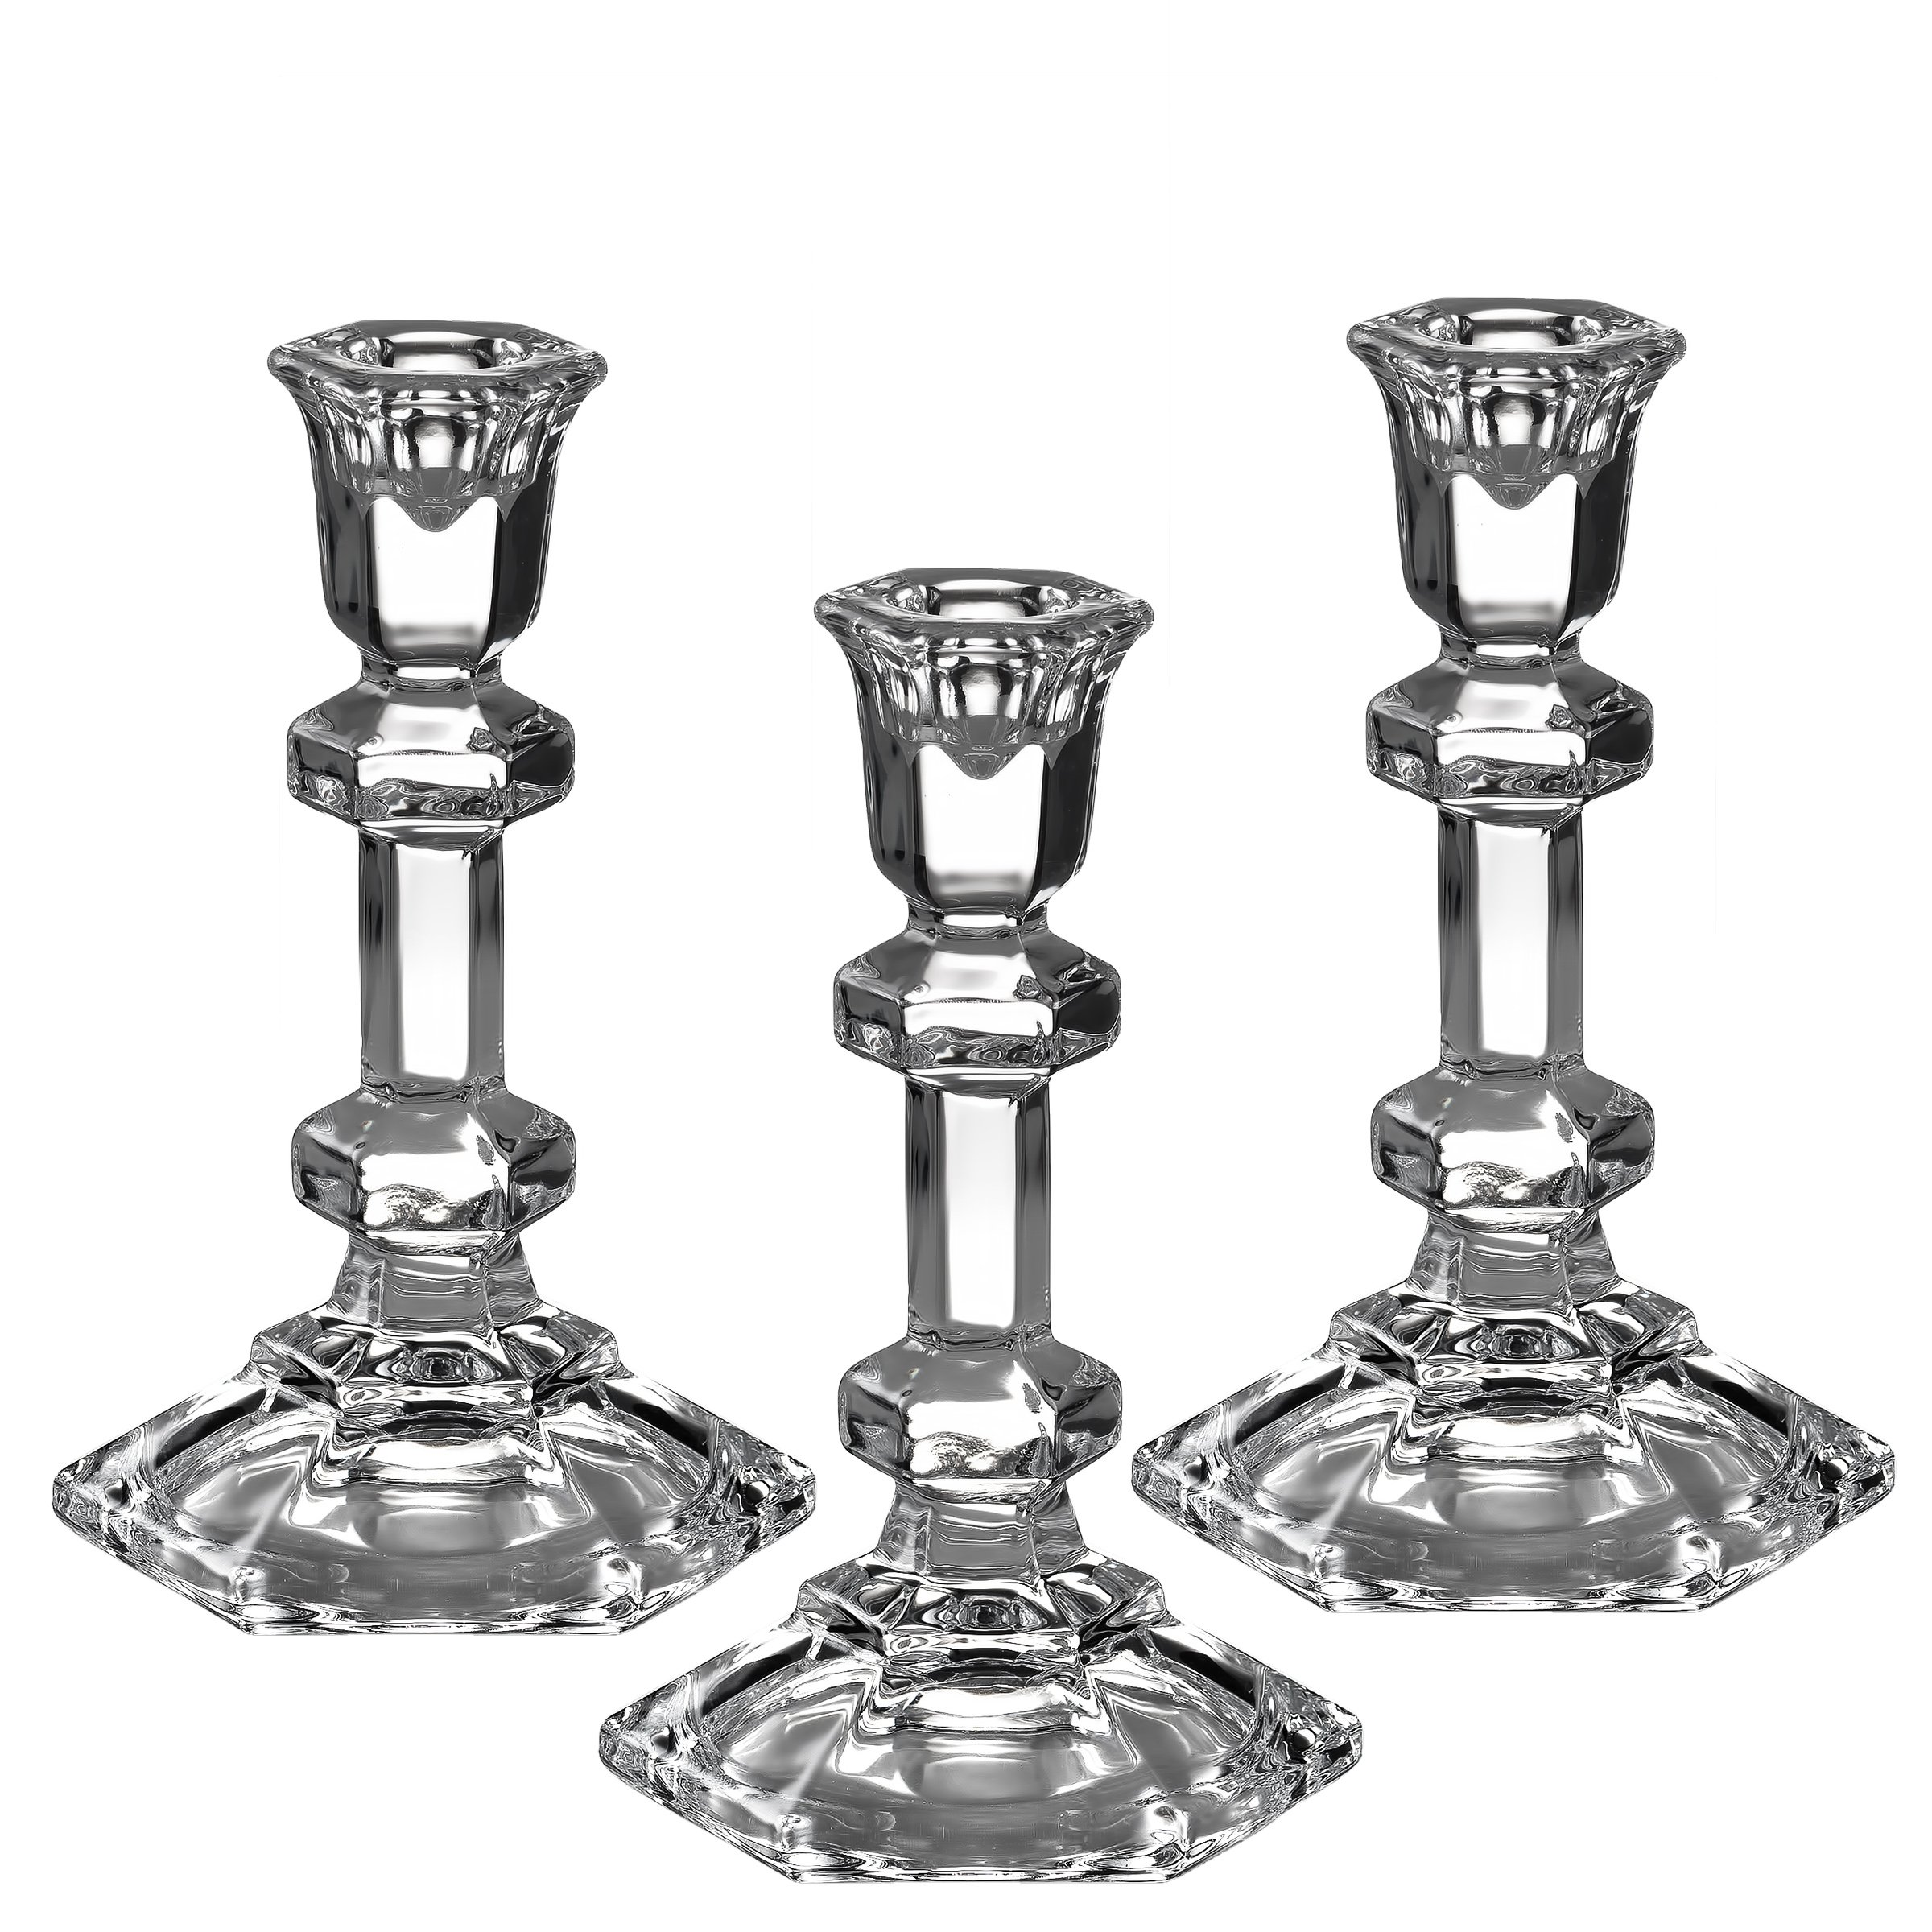 Light In the Dark Set of 3 Hexagonal Shaped Taper/Stick Candle Holder 5.5 Inch Tall